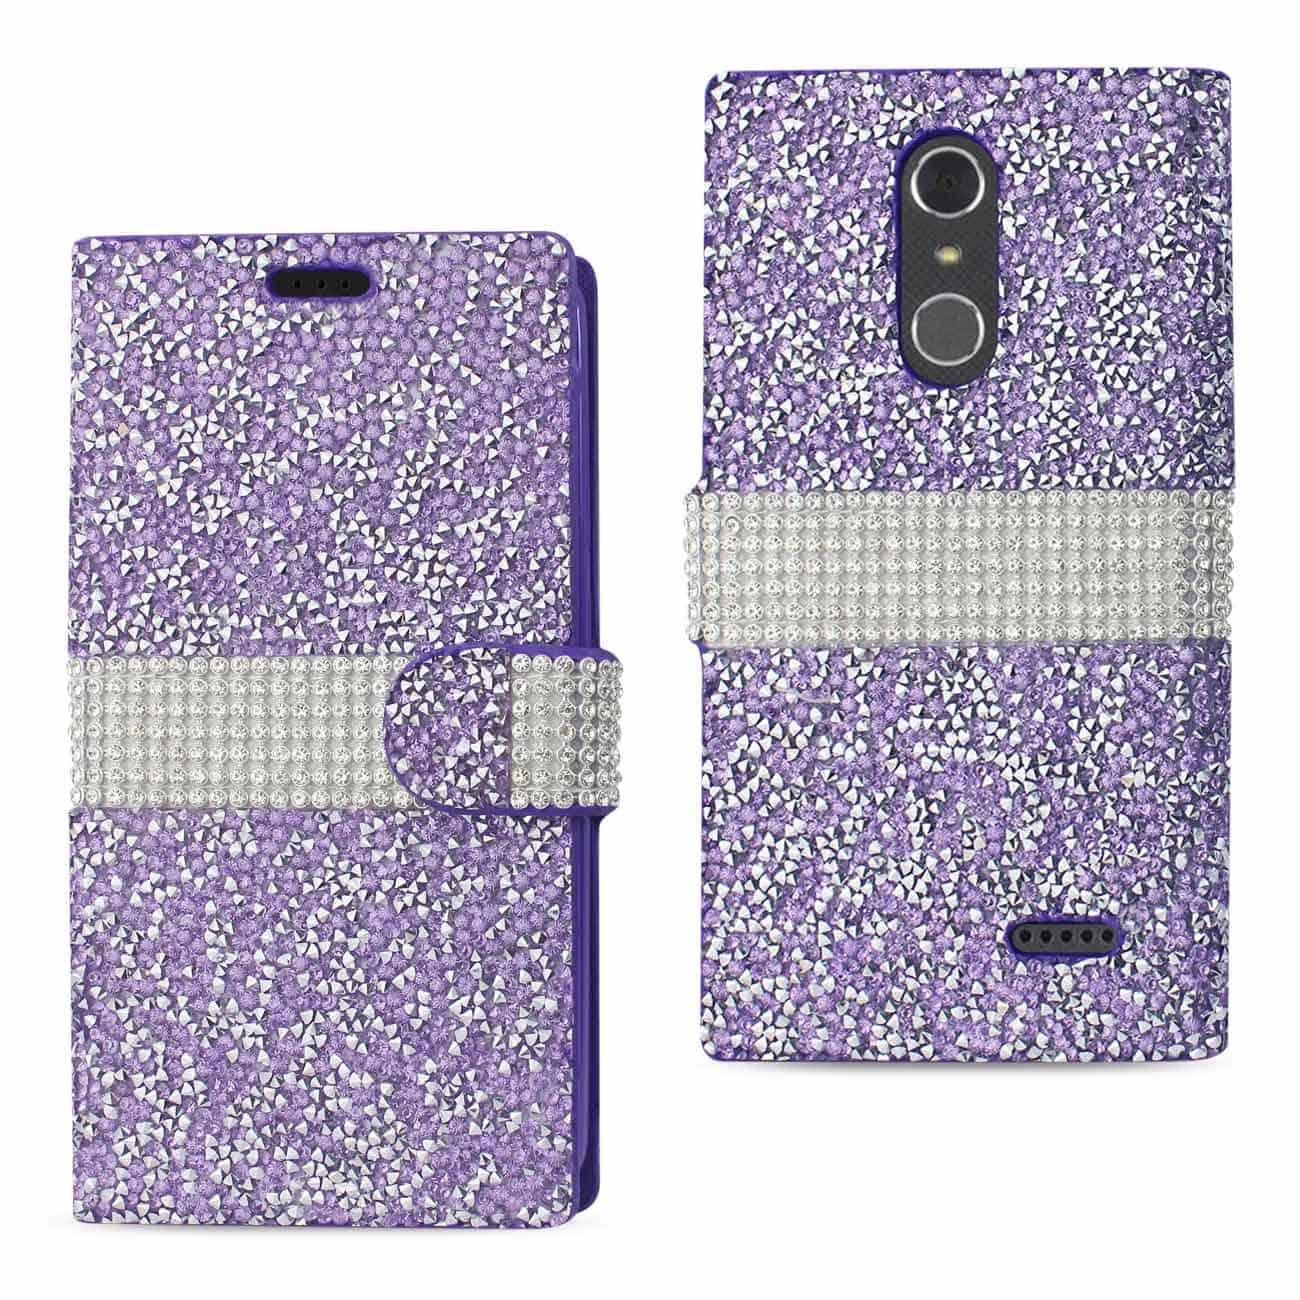 GRAND X 4 DIAMOND RHINESTONE WALLET CASE IN PURPLE